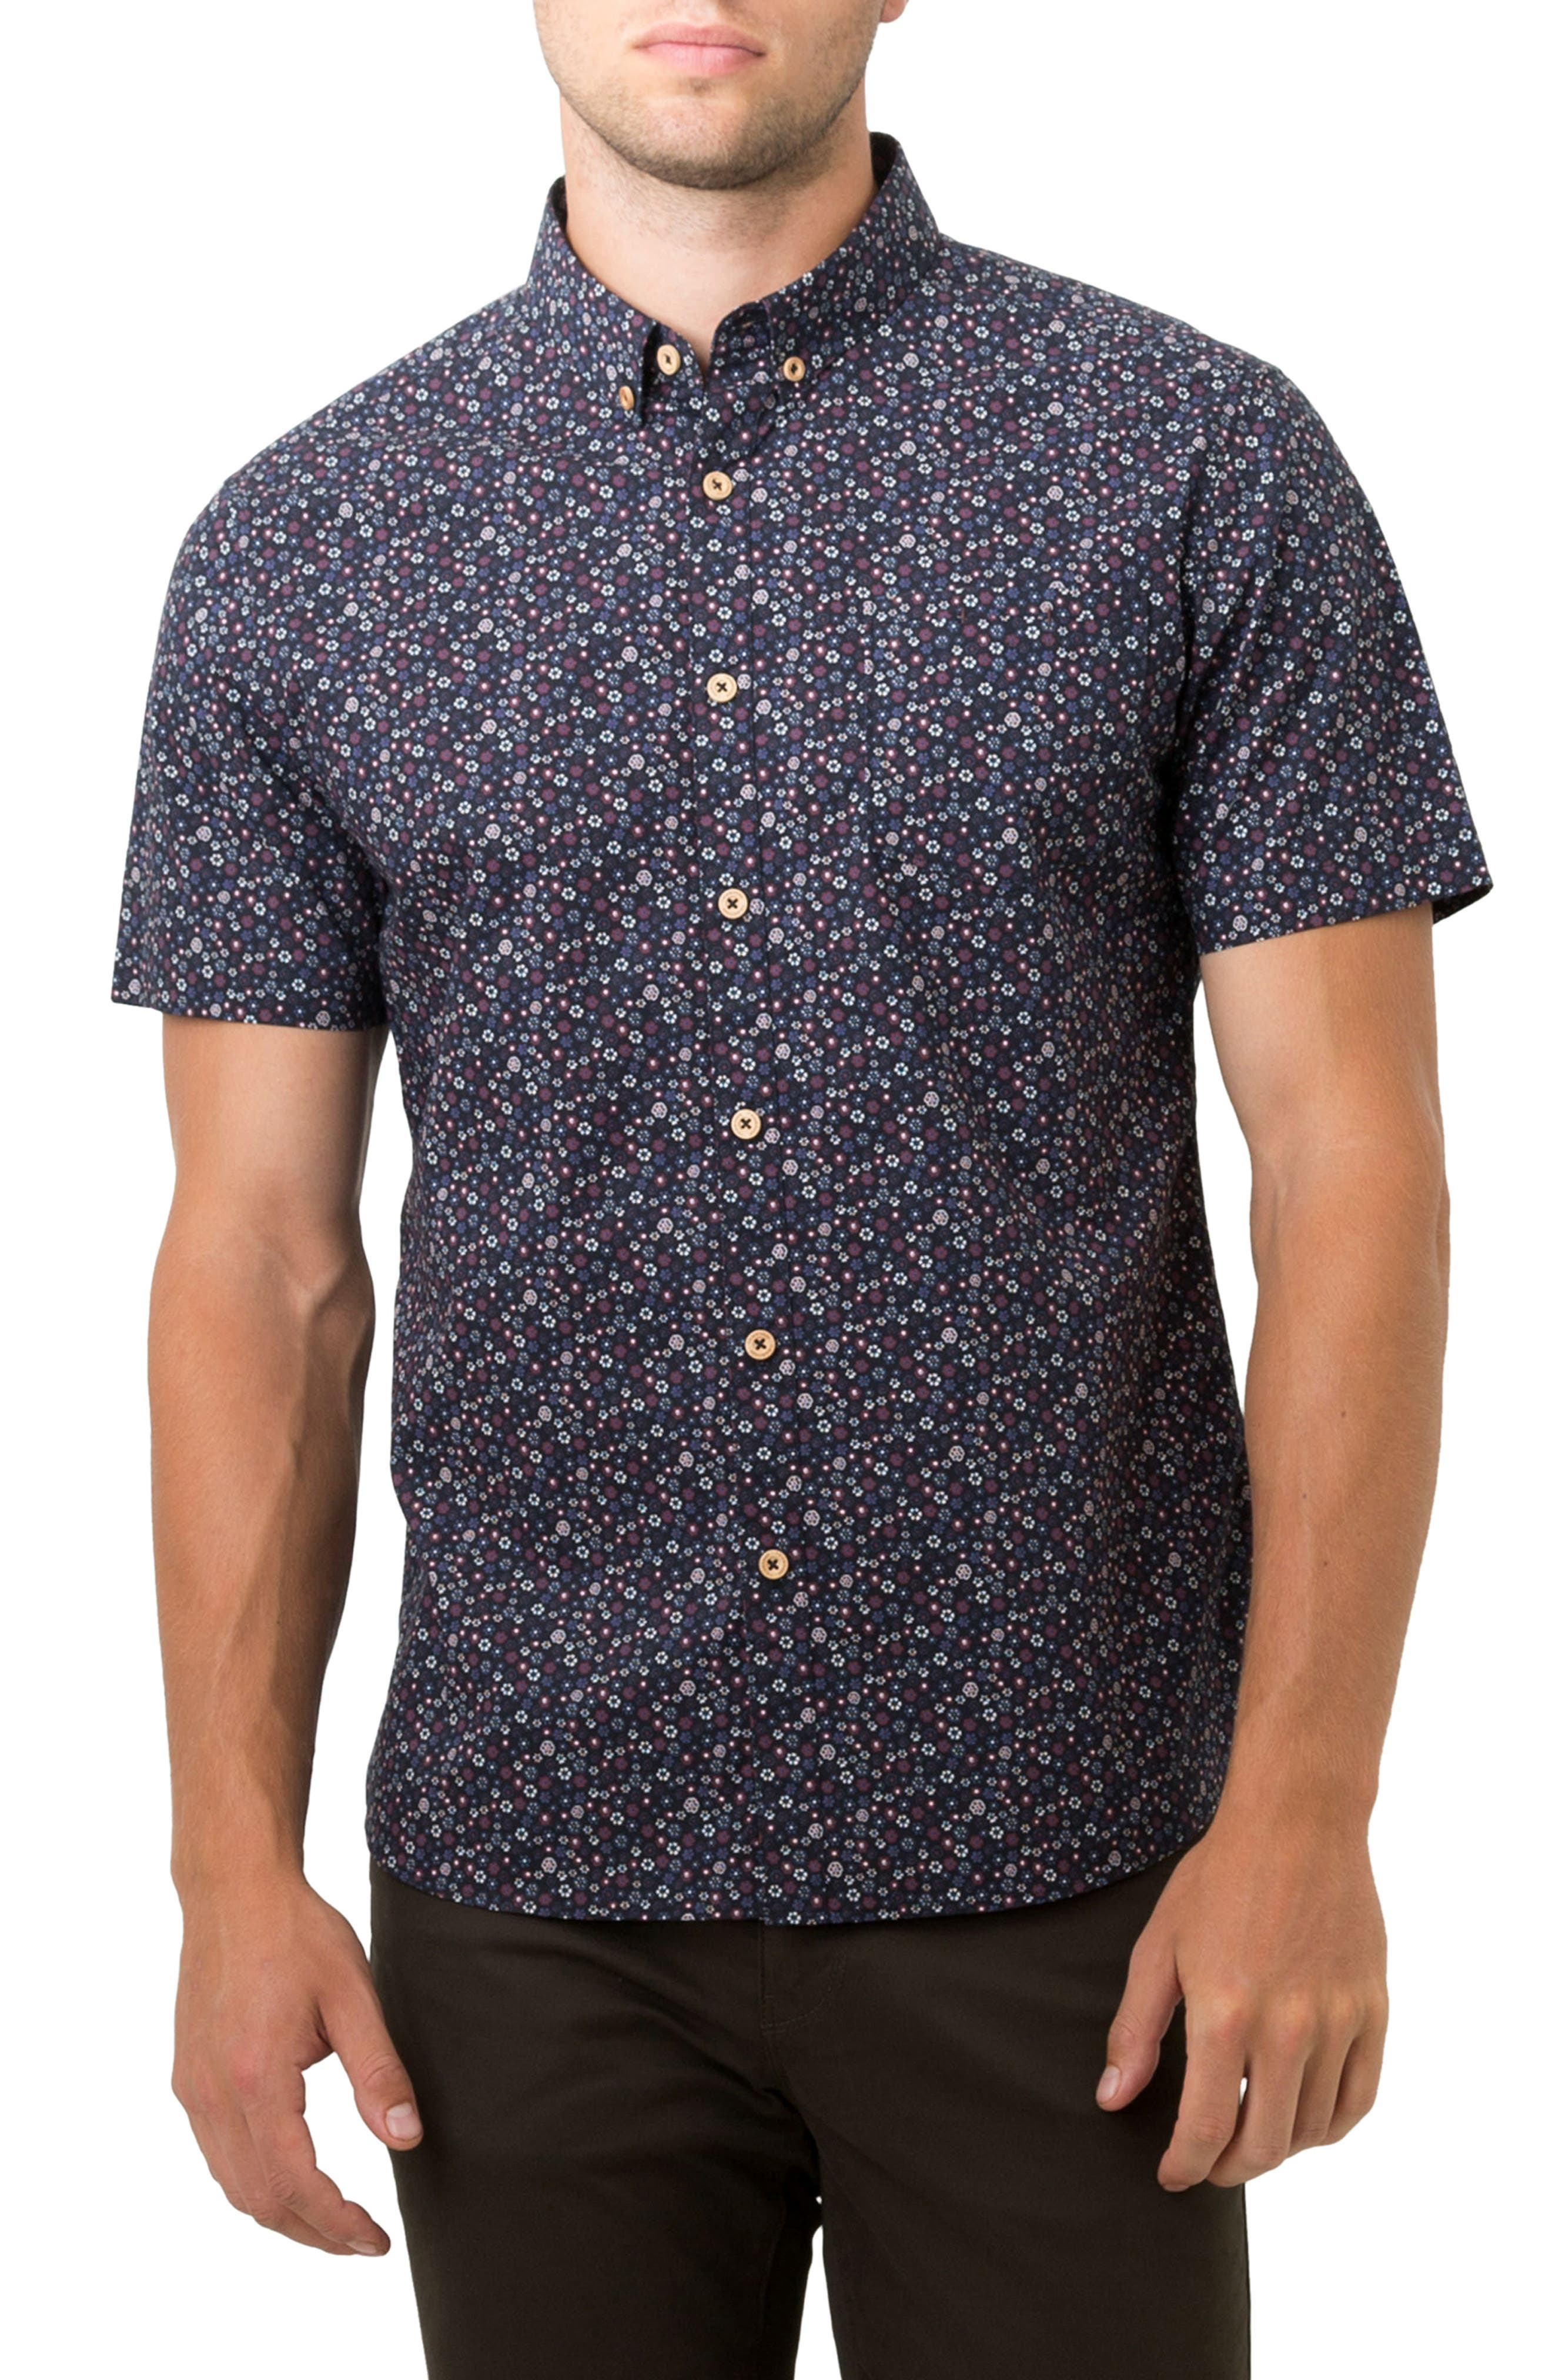 Pure Luck Woven Shirt,                         Main,                         color, Navy